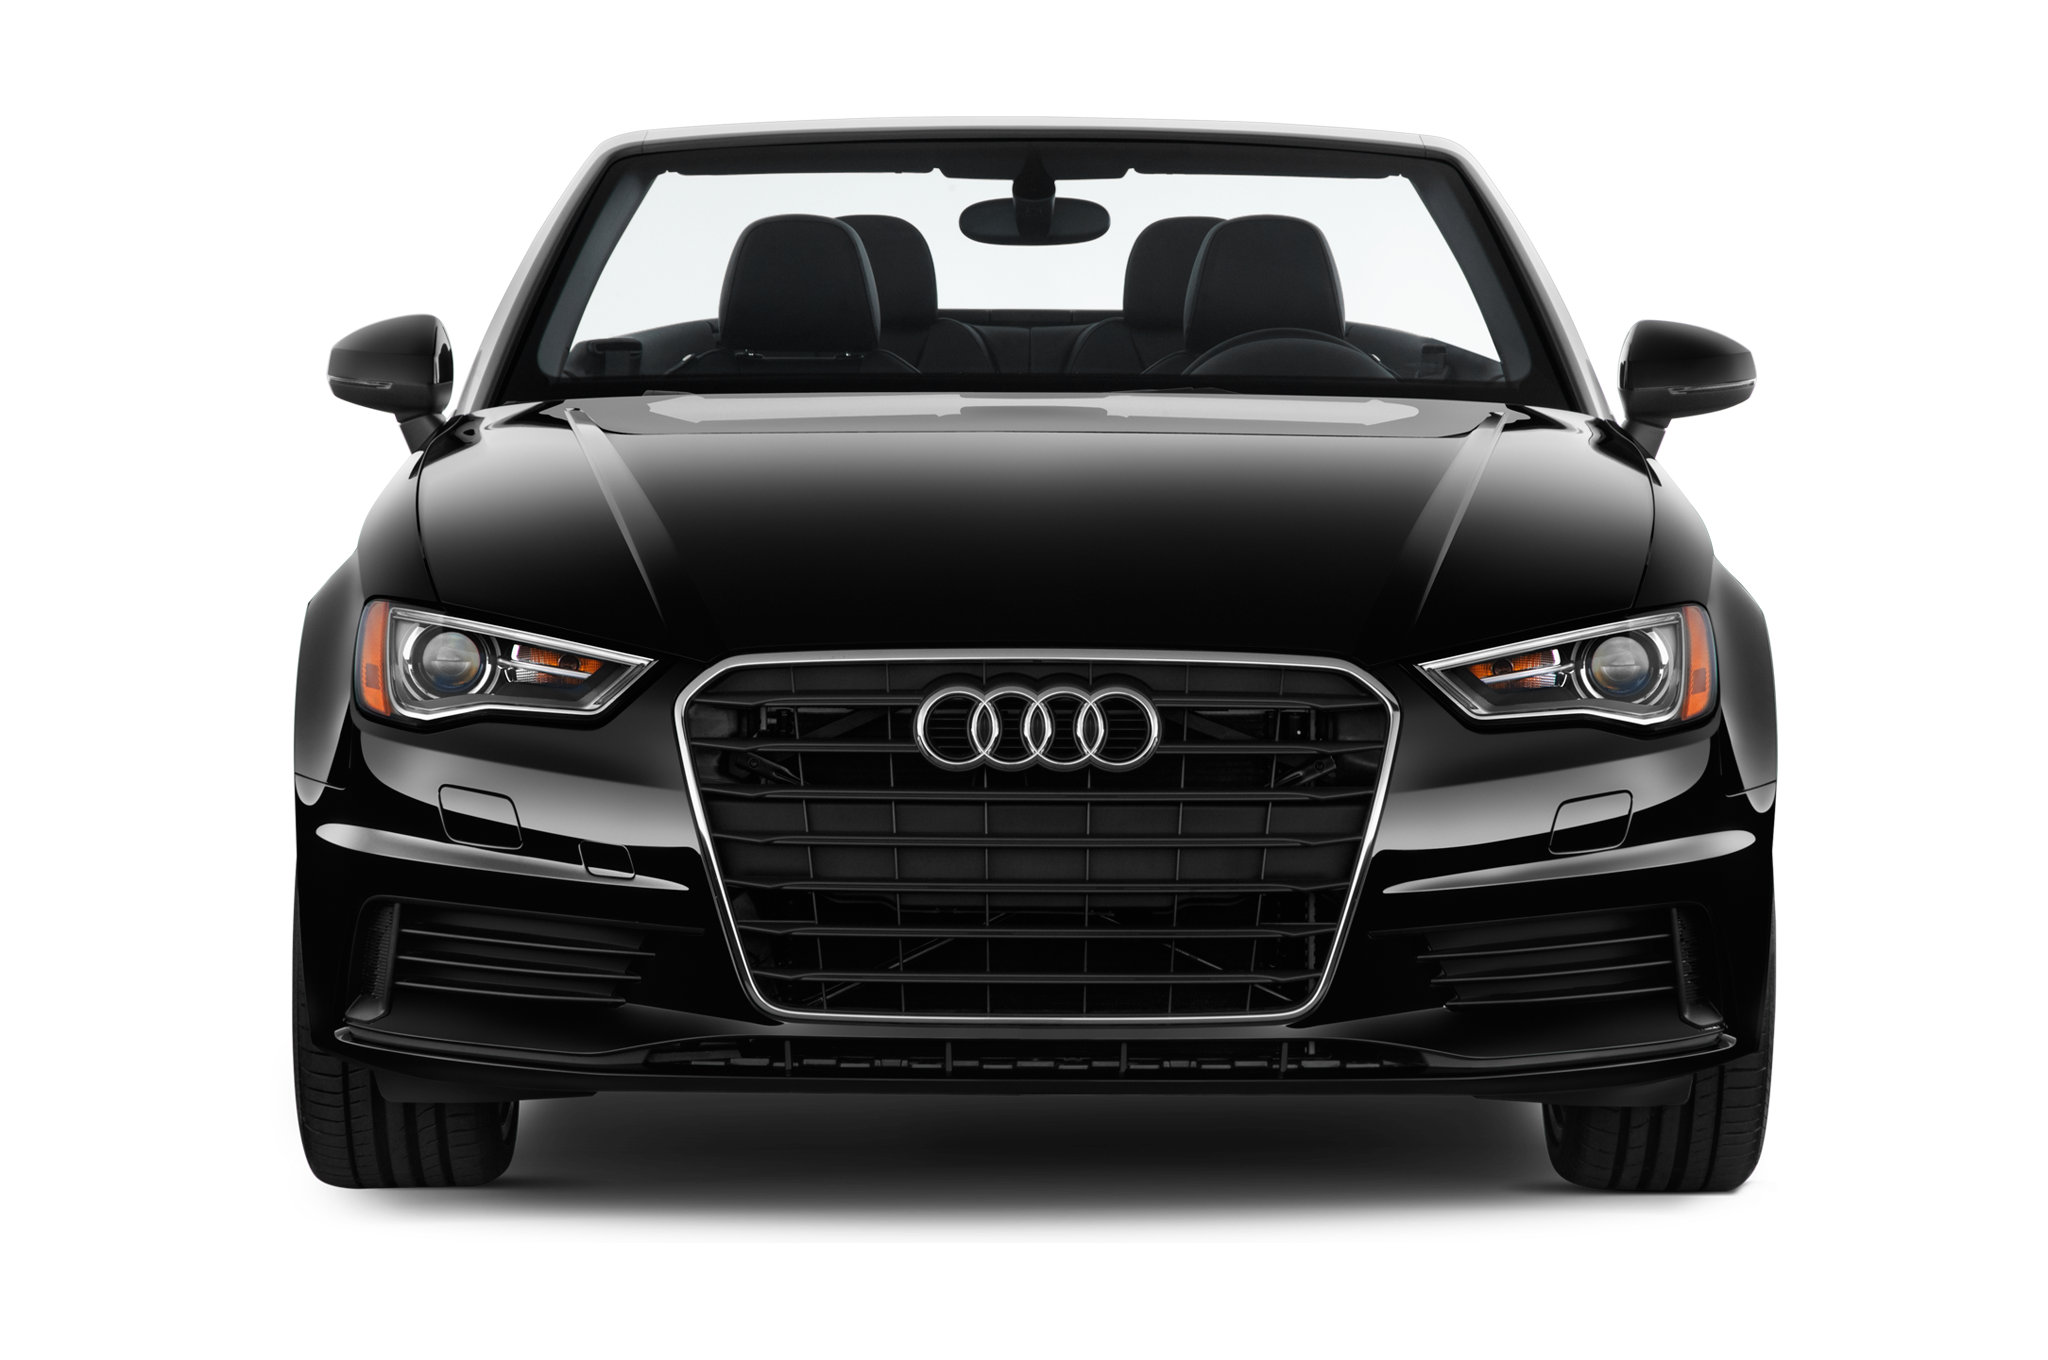 Audi A3 Backgrounds on Wallpapers Vista